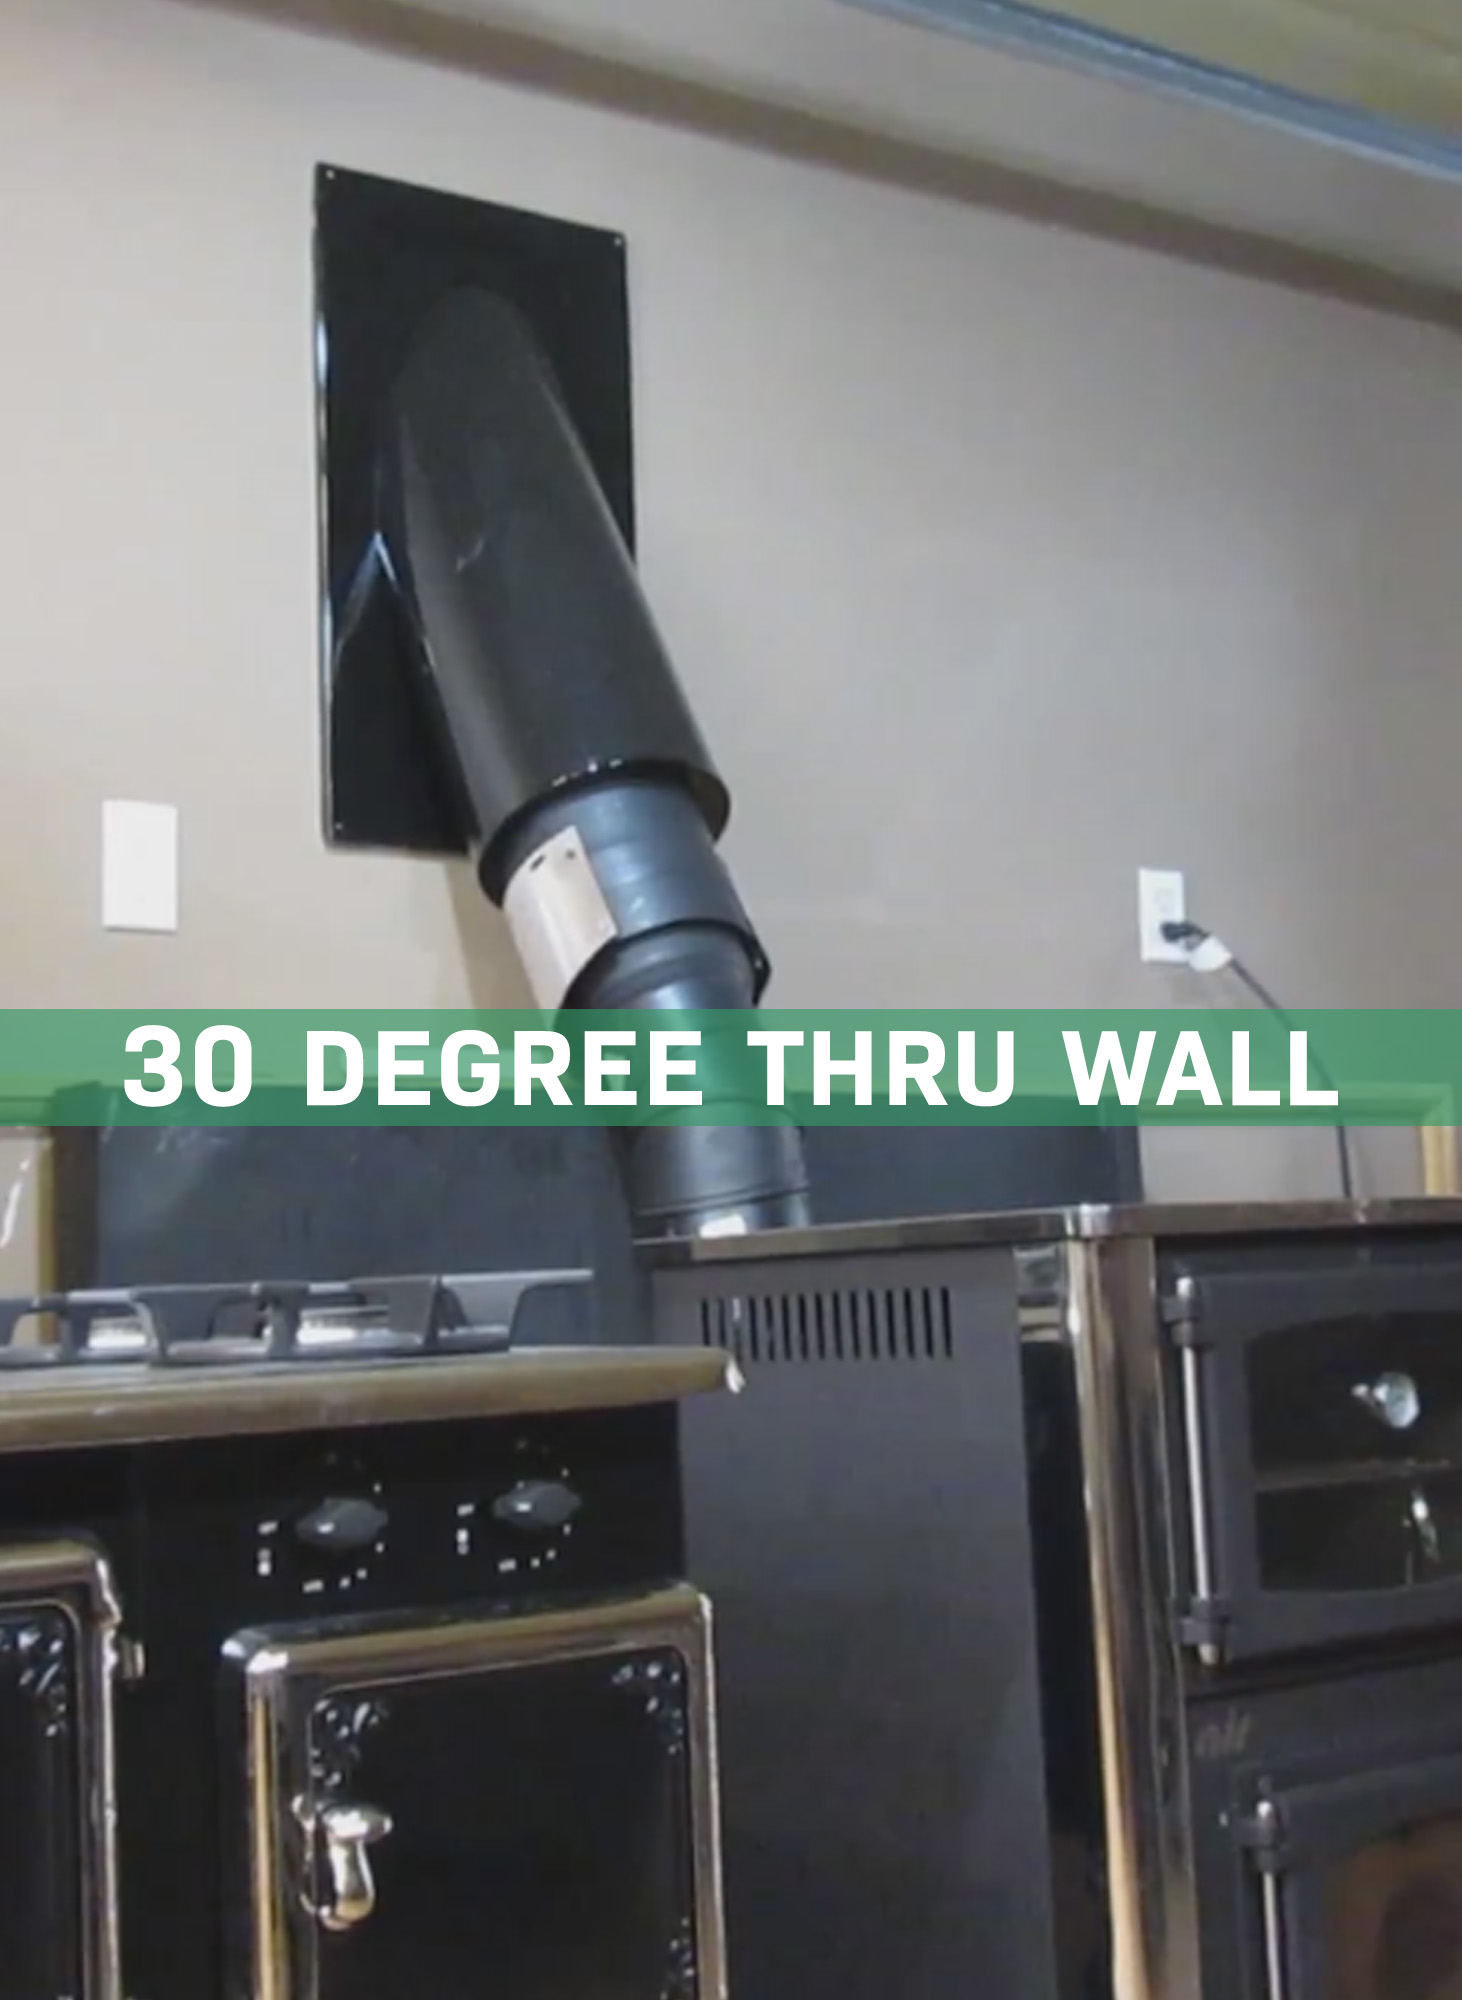 frontpage_30_degree_thru_wall